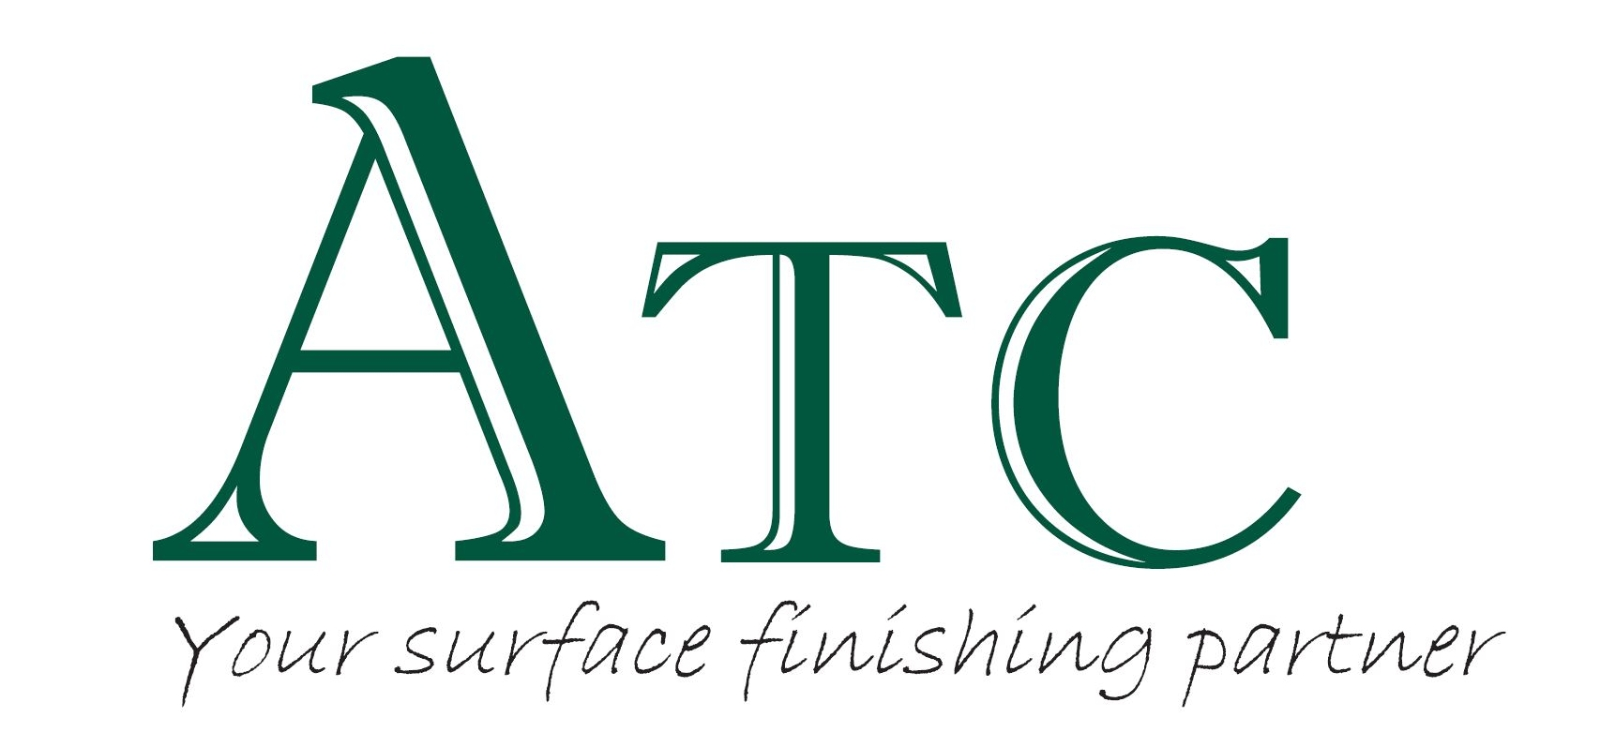 ATC COATING PTE LTD